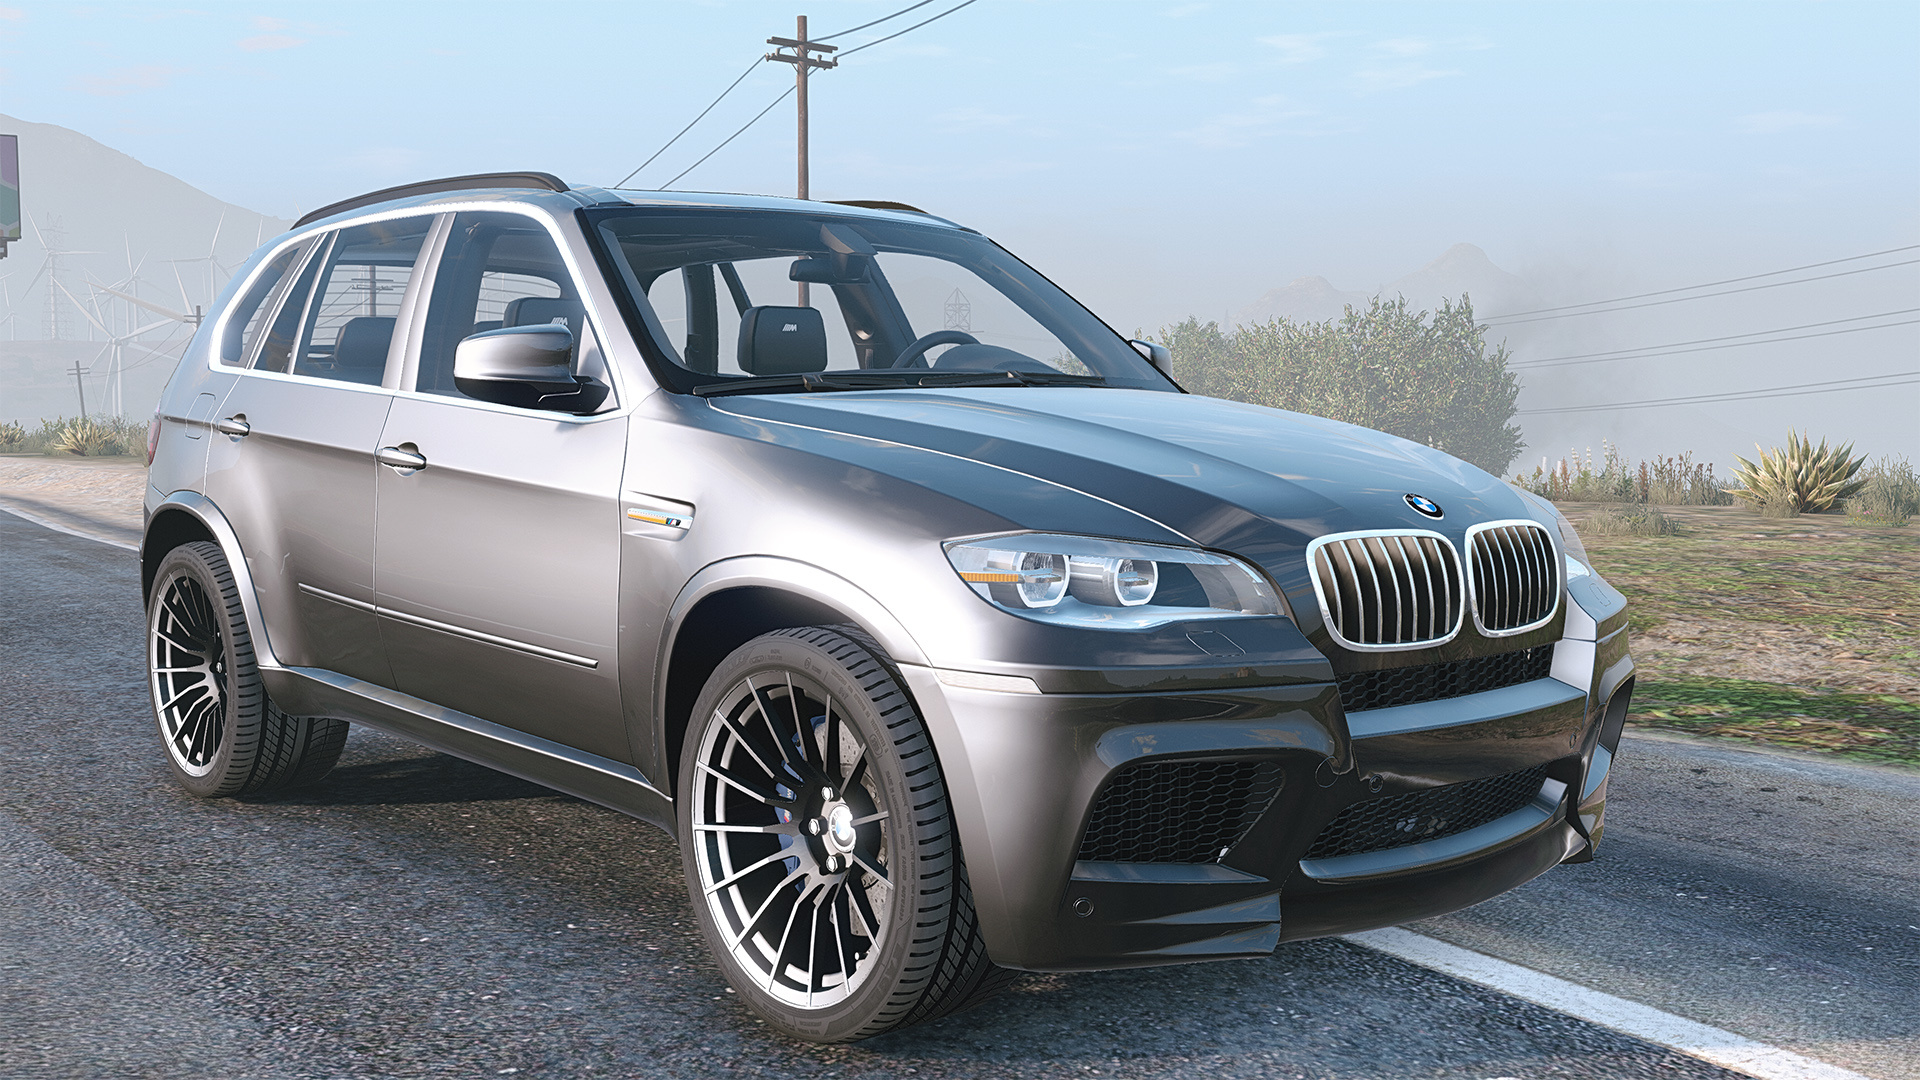 BMW X5M 2013 [Add-On | Animated] - GTA5-Mods com